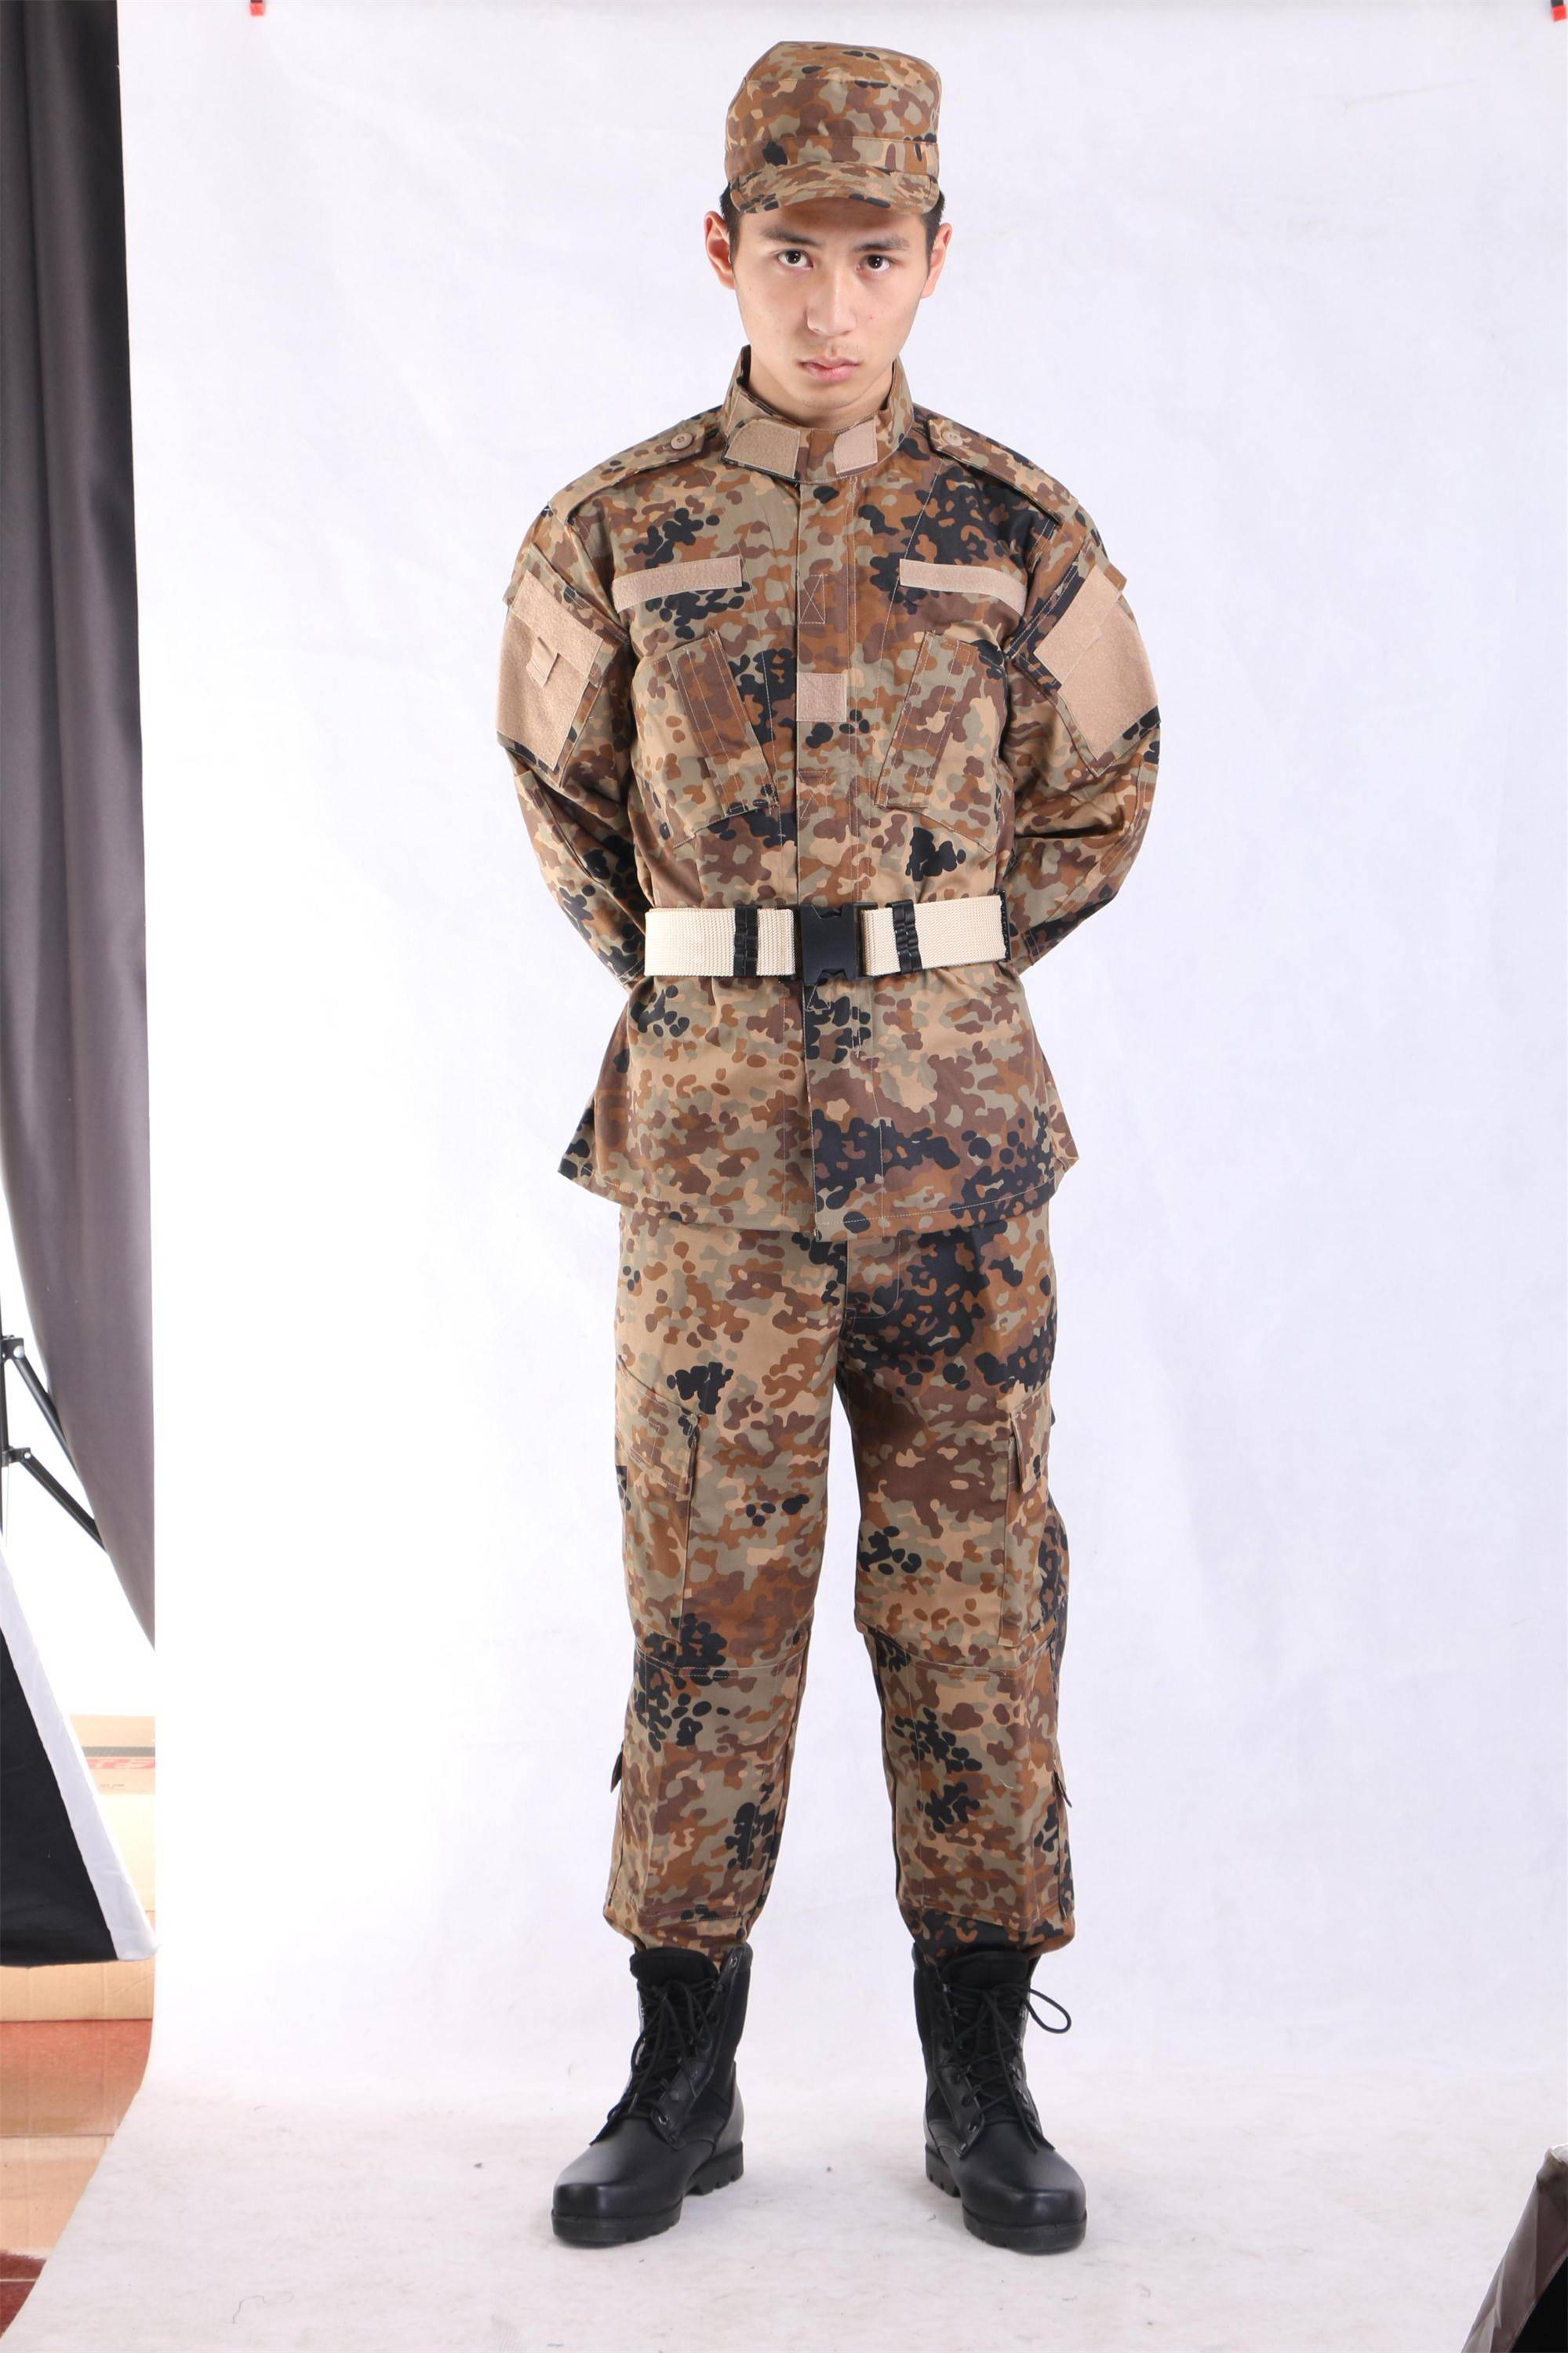 Military Uniforms/ Army uniforms